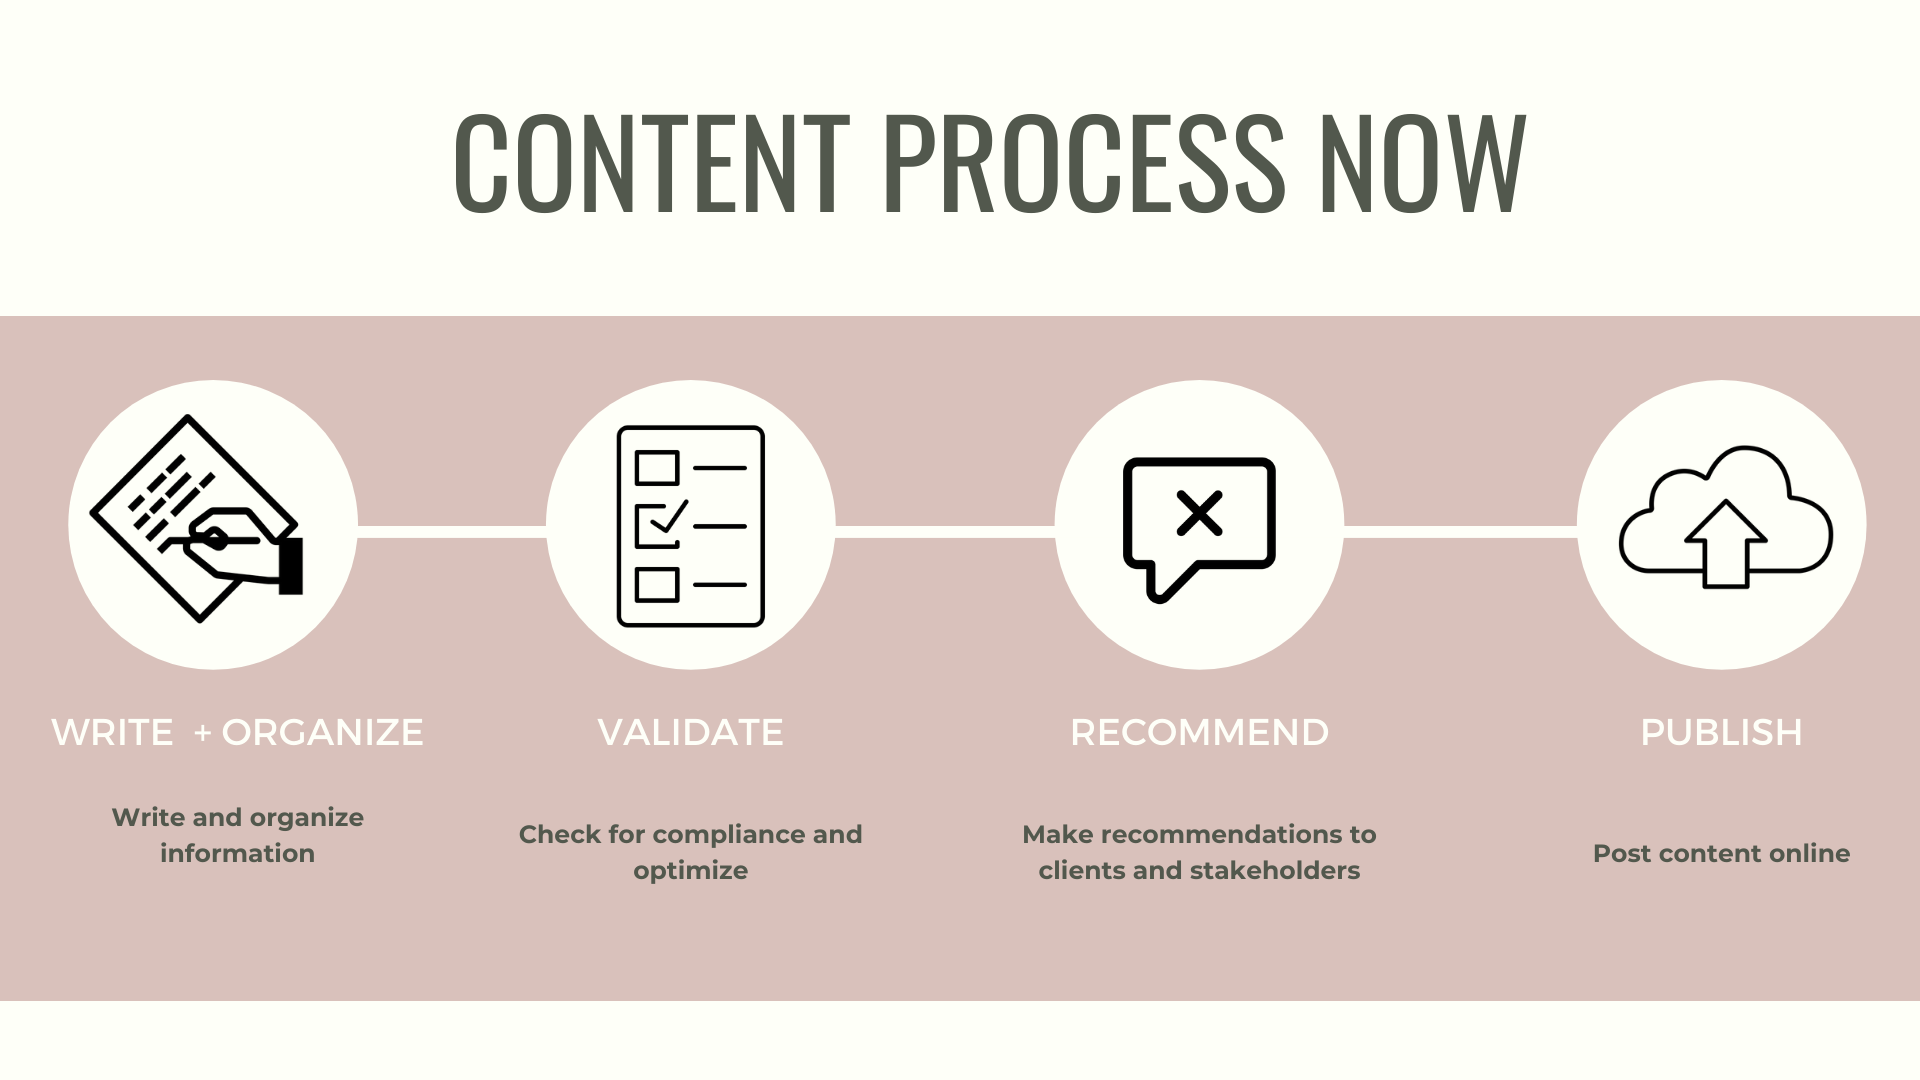 Graphic representing the content process now.